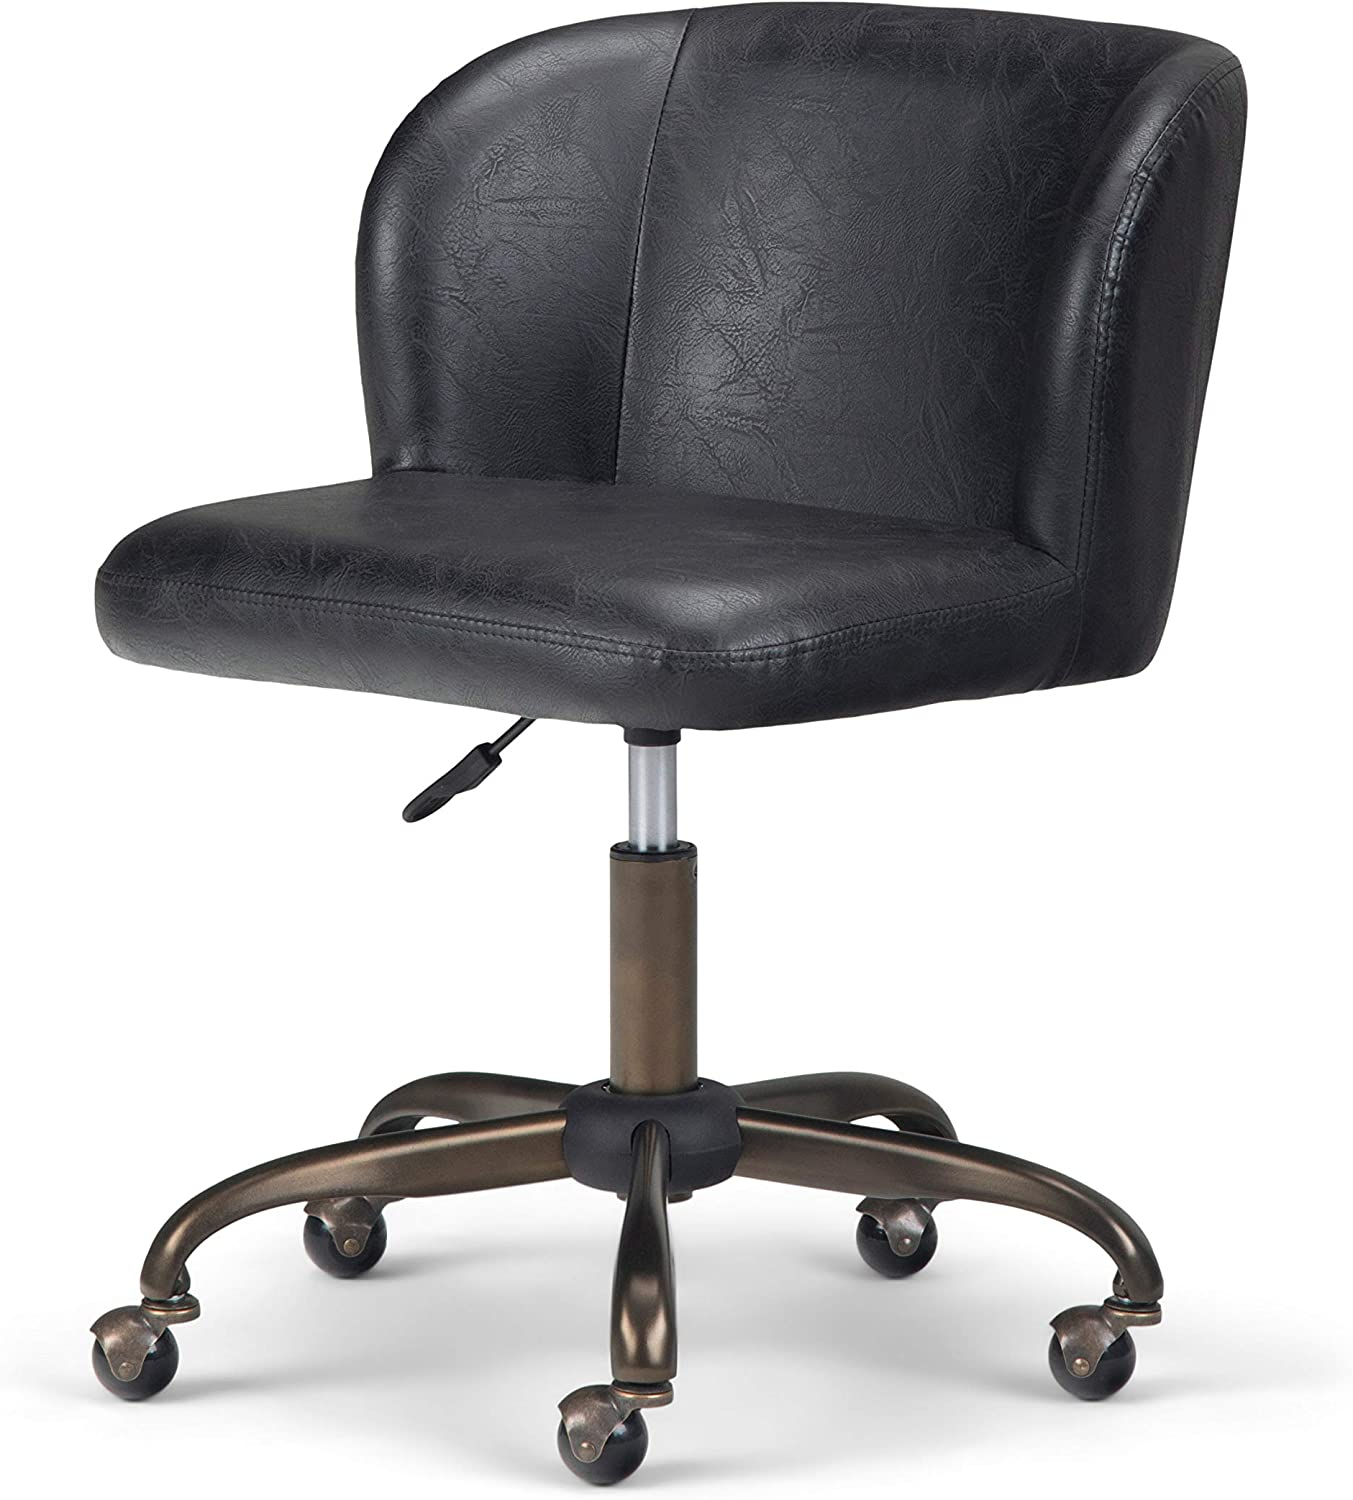 Simpli Home Sheehan Swivel Adjustable Executive Computer Office Chair in Distressed Black